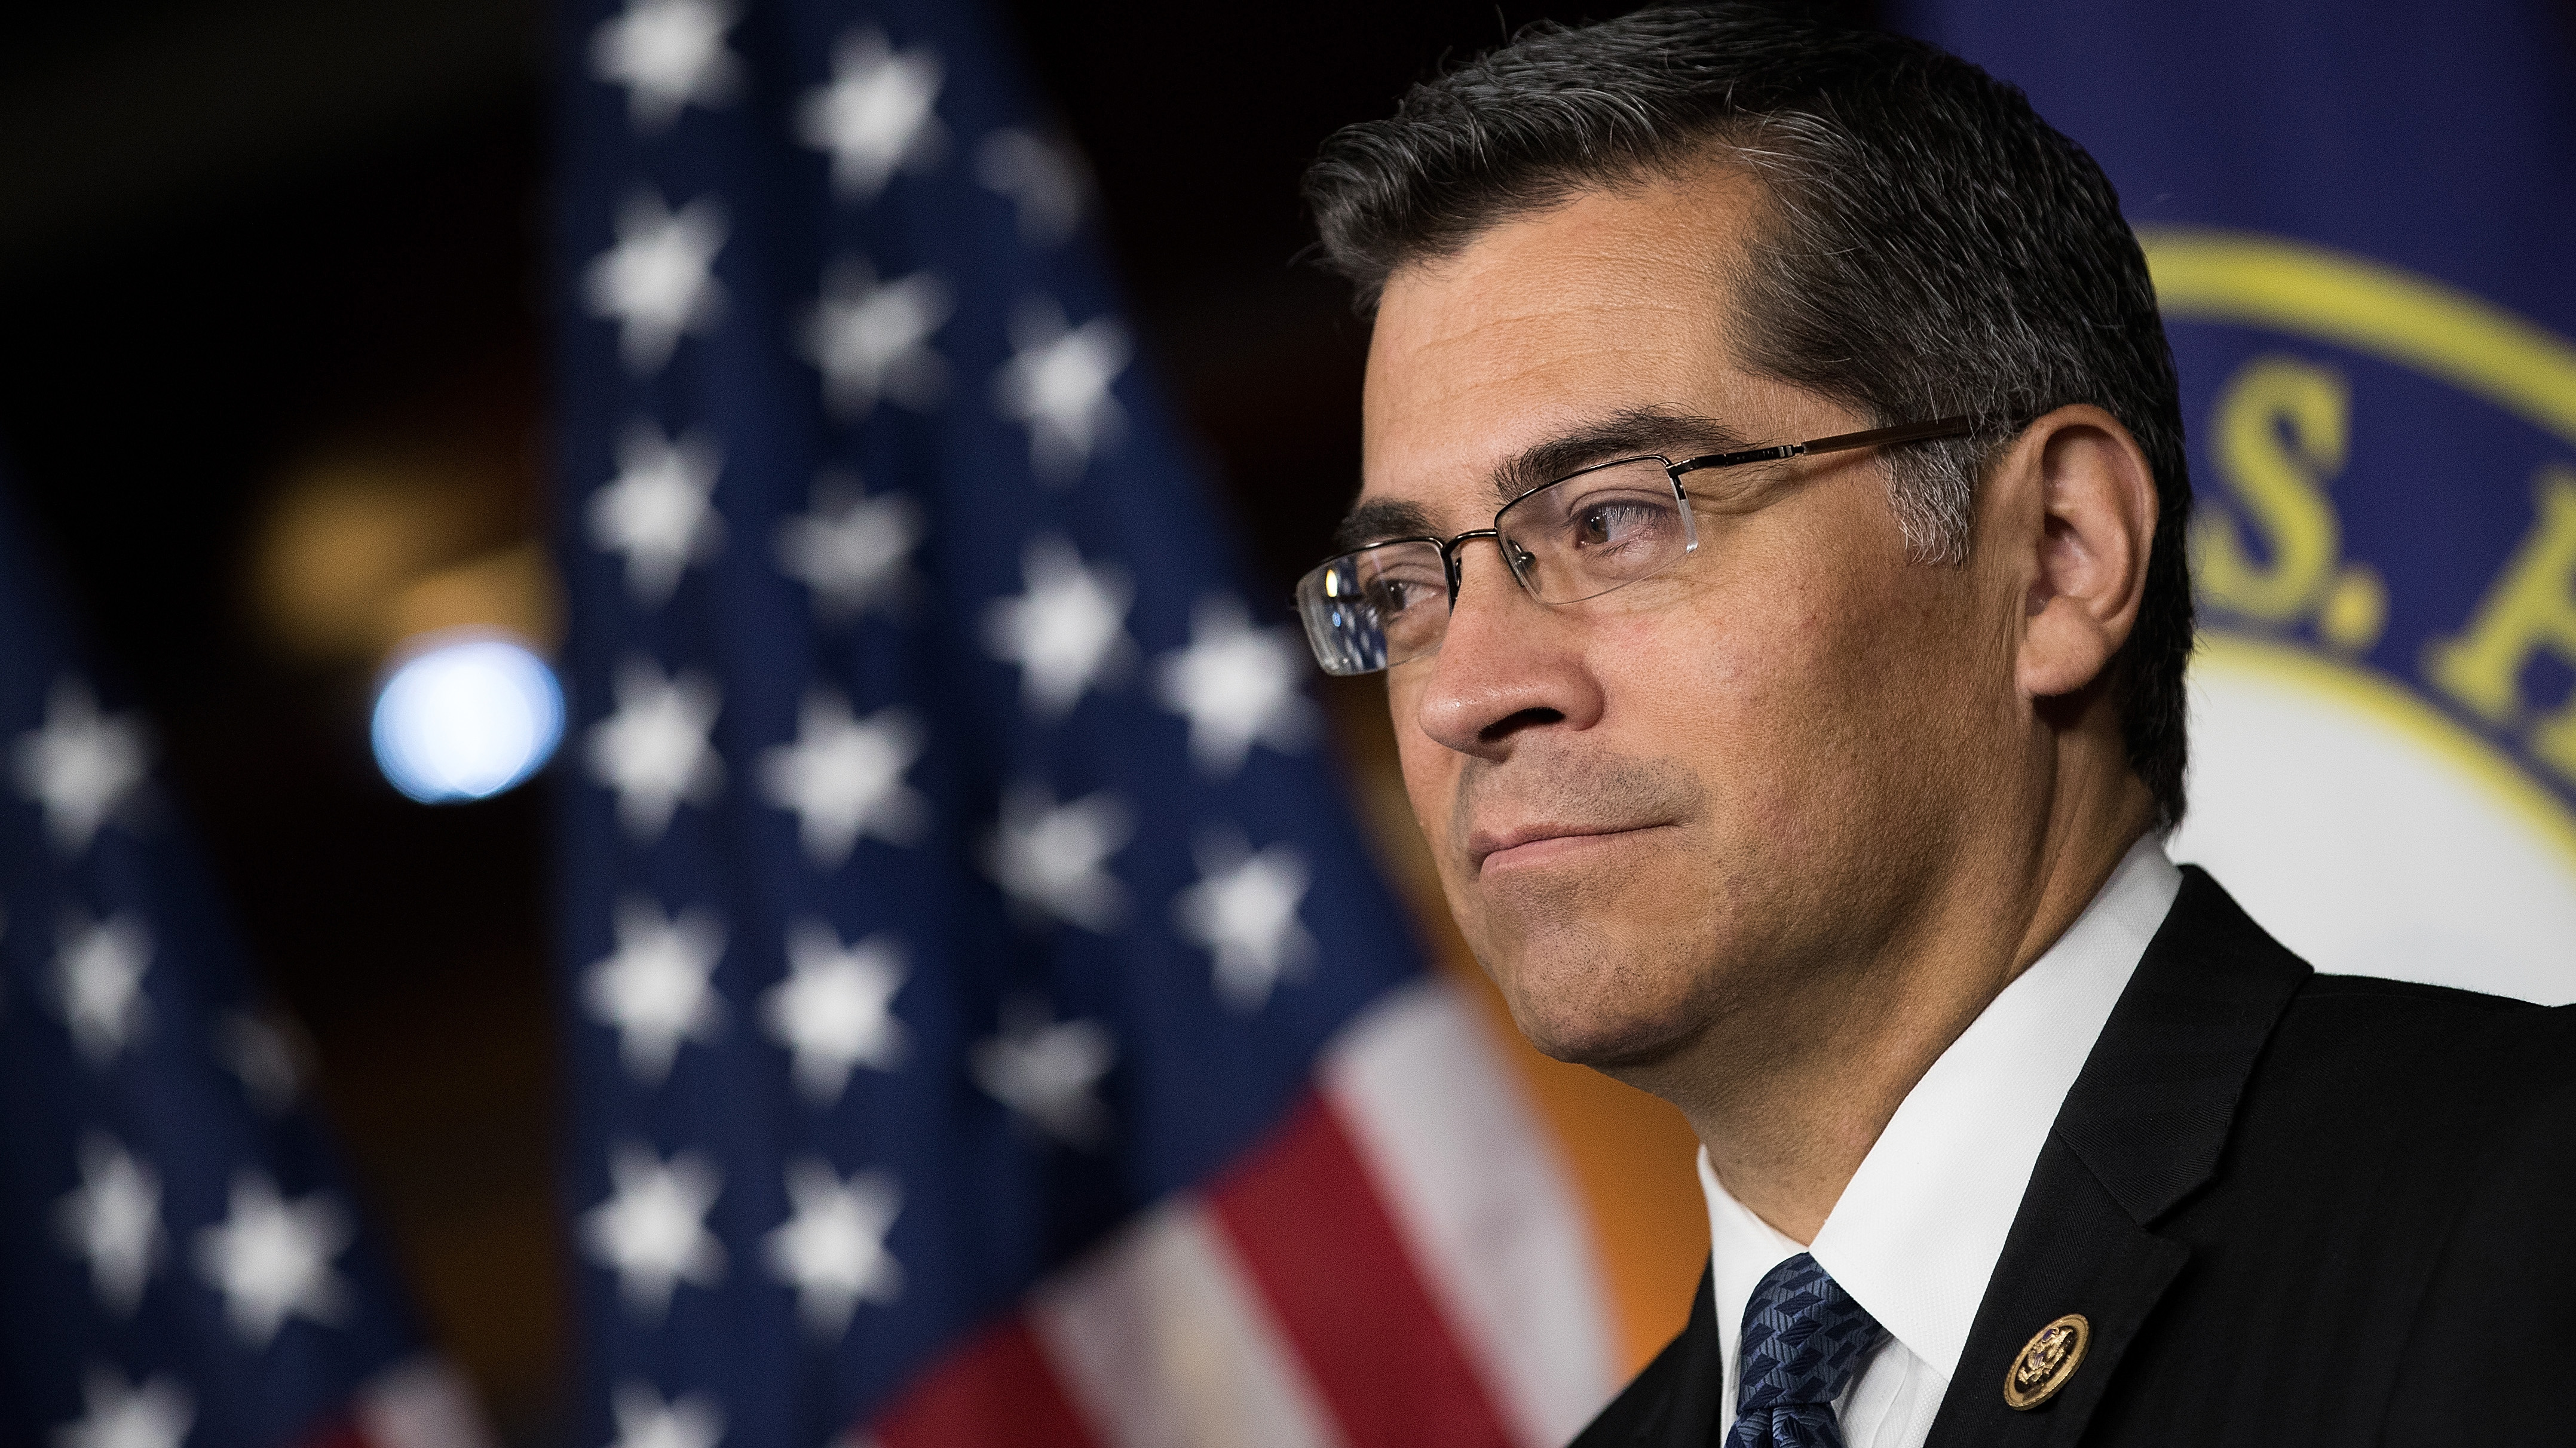 Rep. Xavier Becerra (D-CA) listens during a news conference to discuss the rhetoric of presidential candidate Donald Trump, at the U.S. Capitol, May 11, 2016, in Washington, D.C.